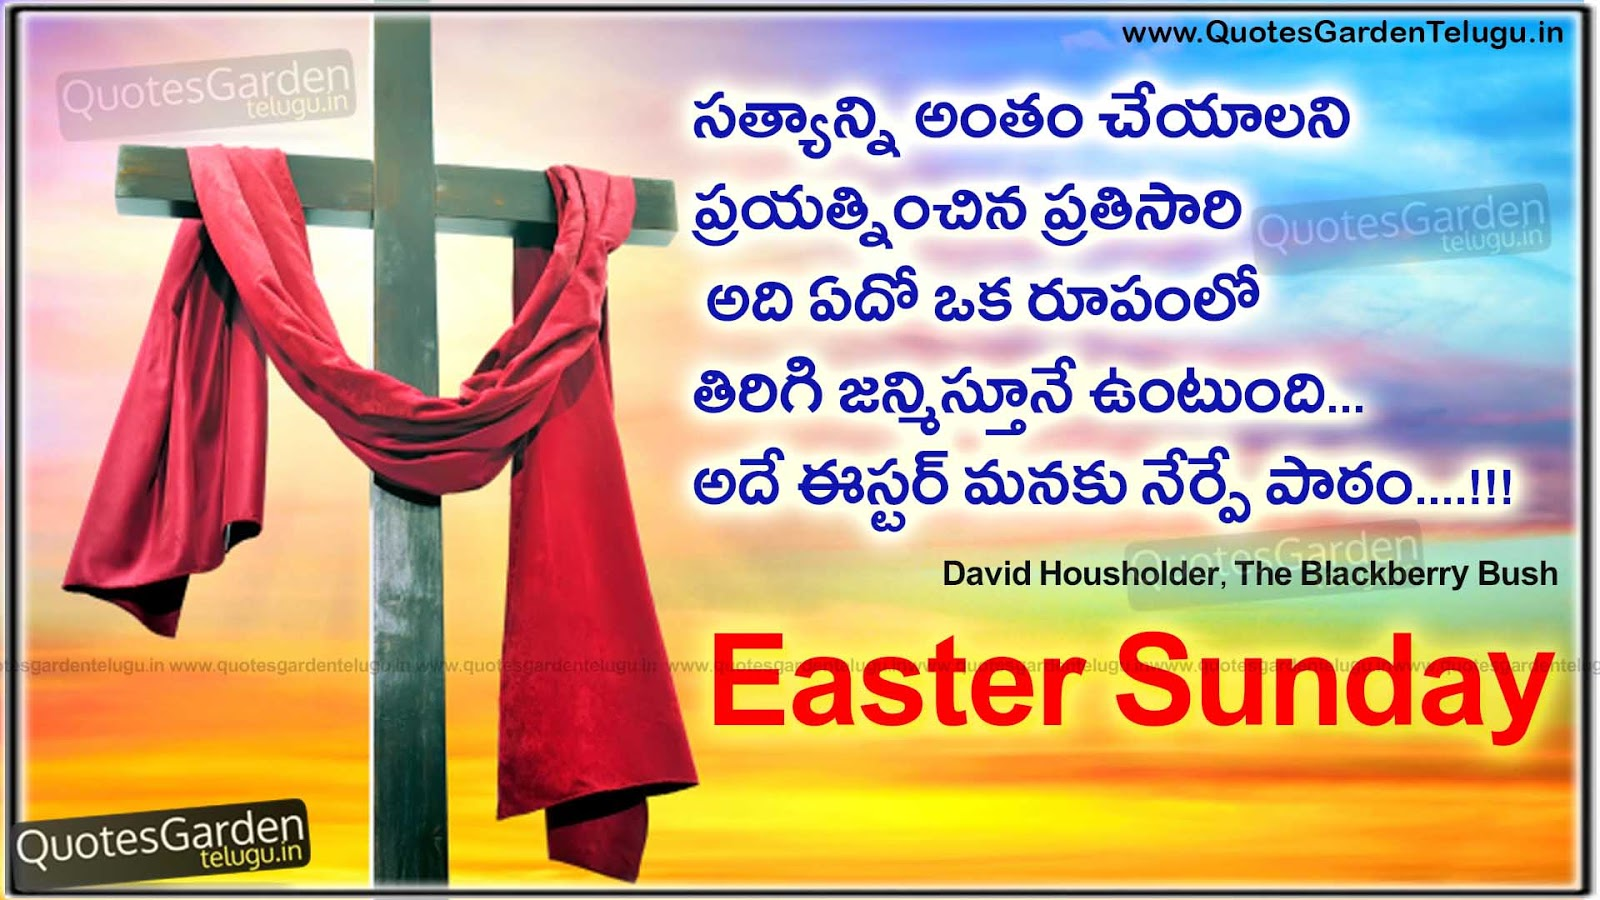 Easter sunday telugu quotes greetings messages quotes garden easter sunday telugu quotes greetings messages kristyandbryce Choice Image